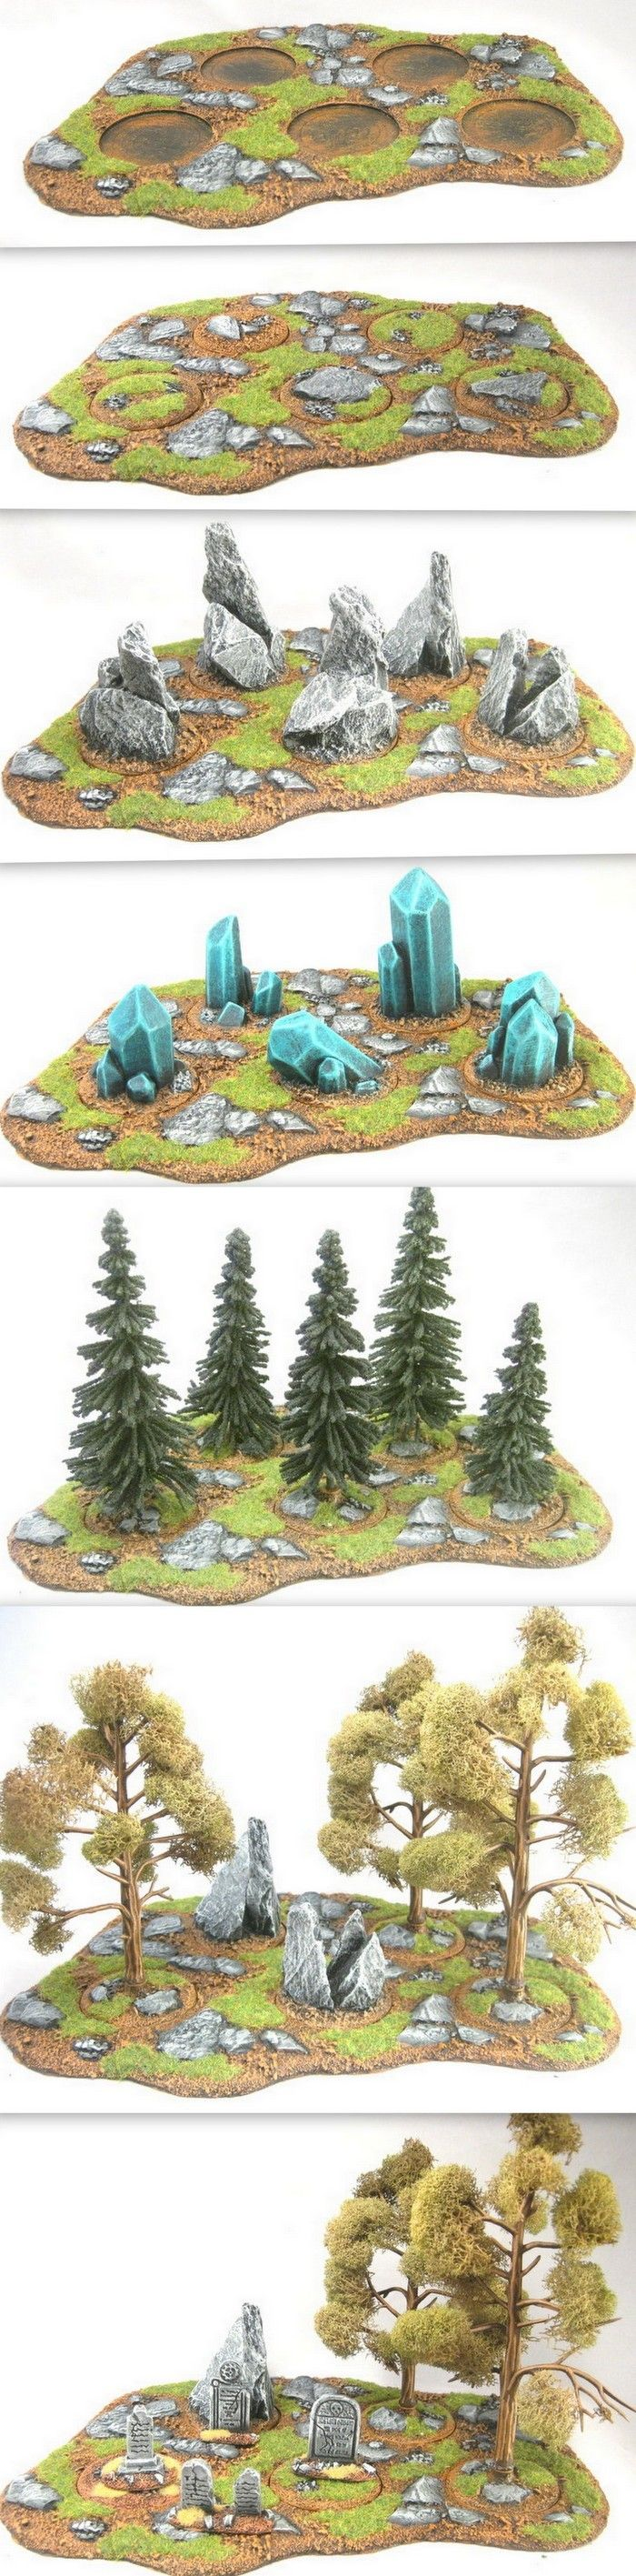 The same area terrain base can create many different types of terrain.